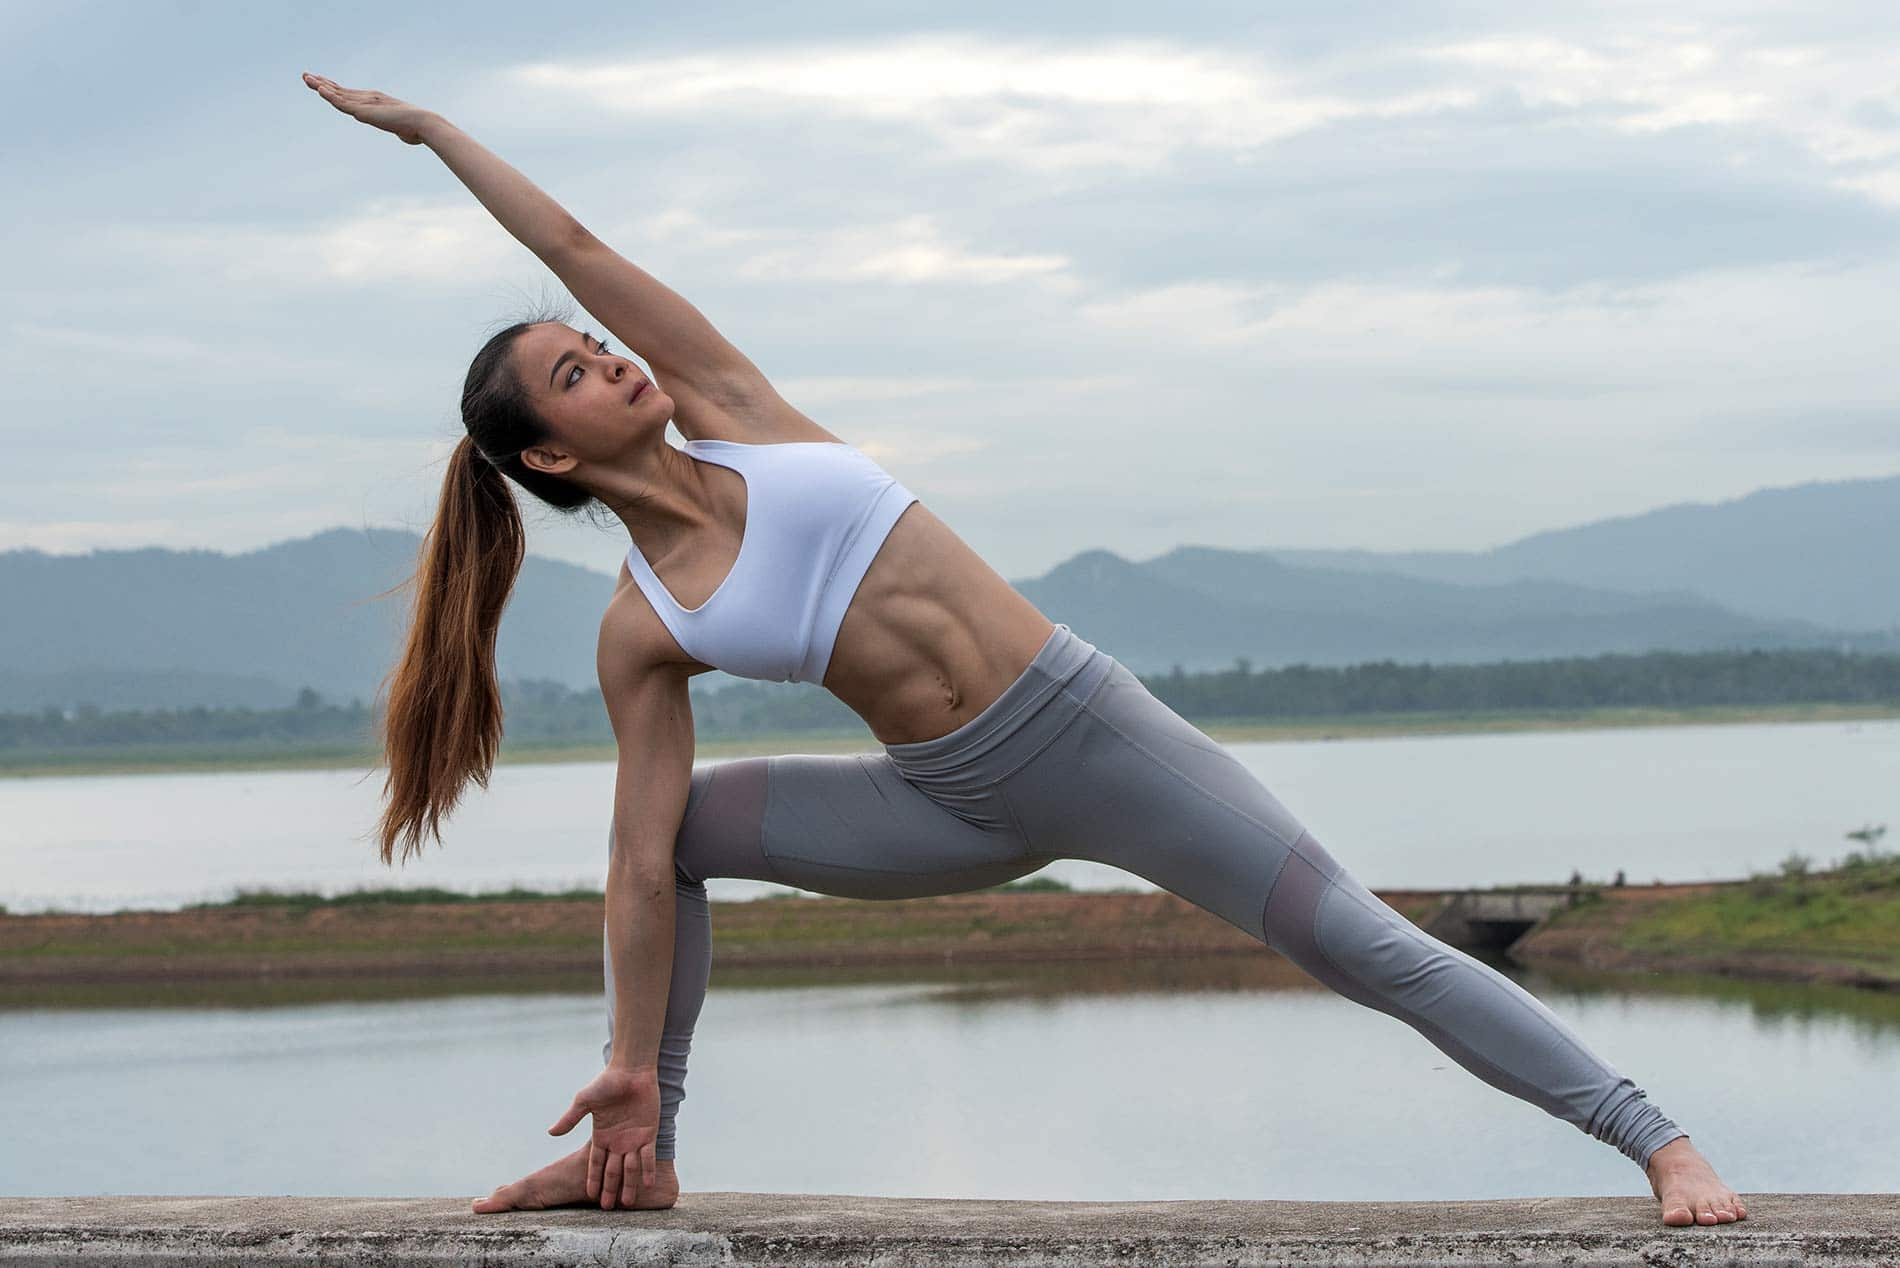 Exercises that can build strength and flexibility